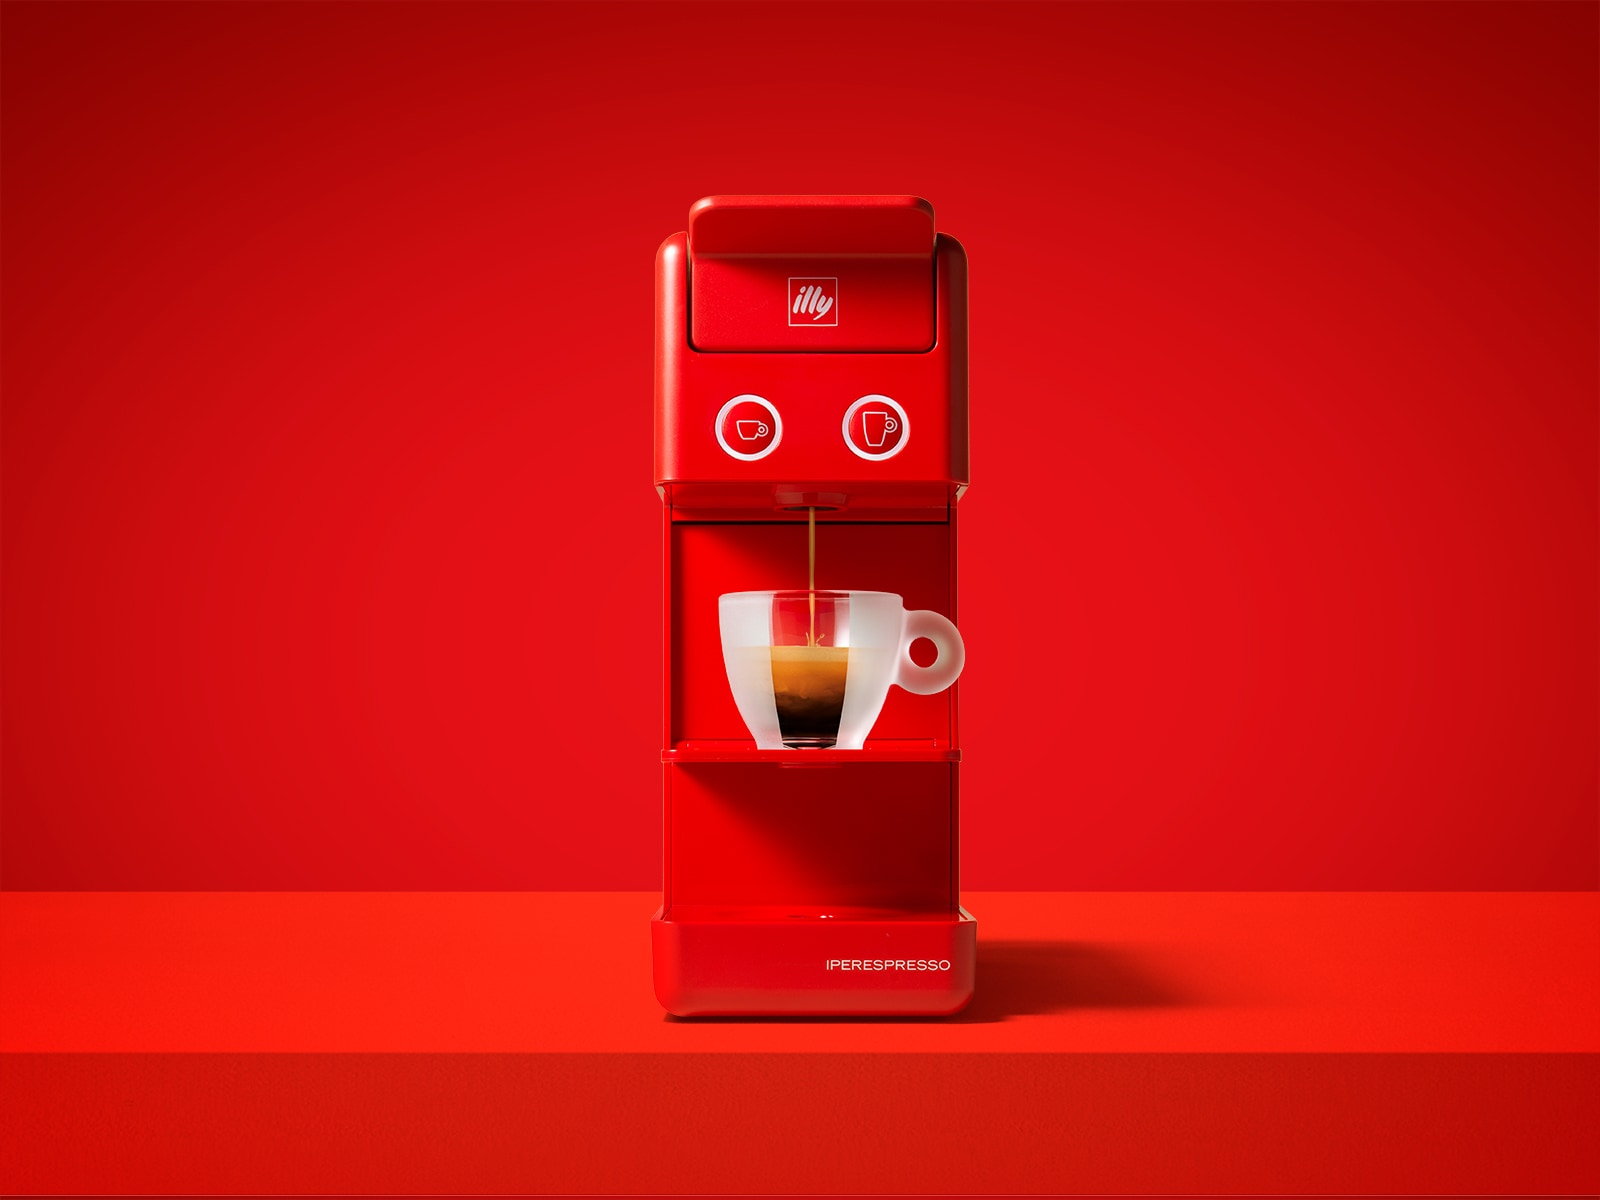 Macchina caffè a capsule gratis con illy Lovers